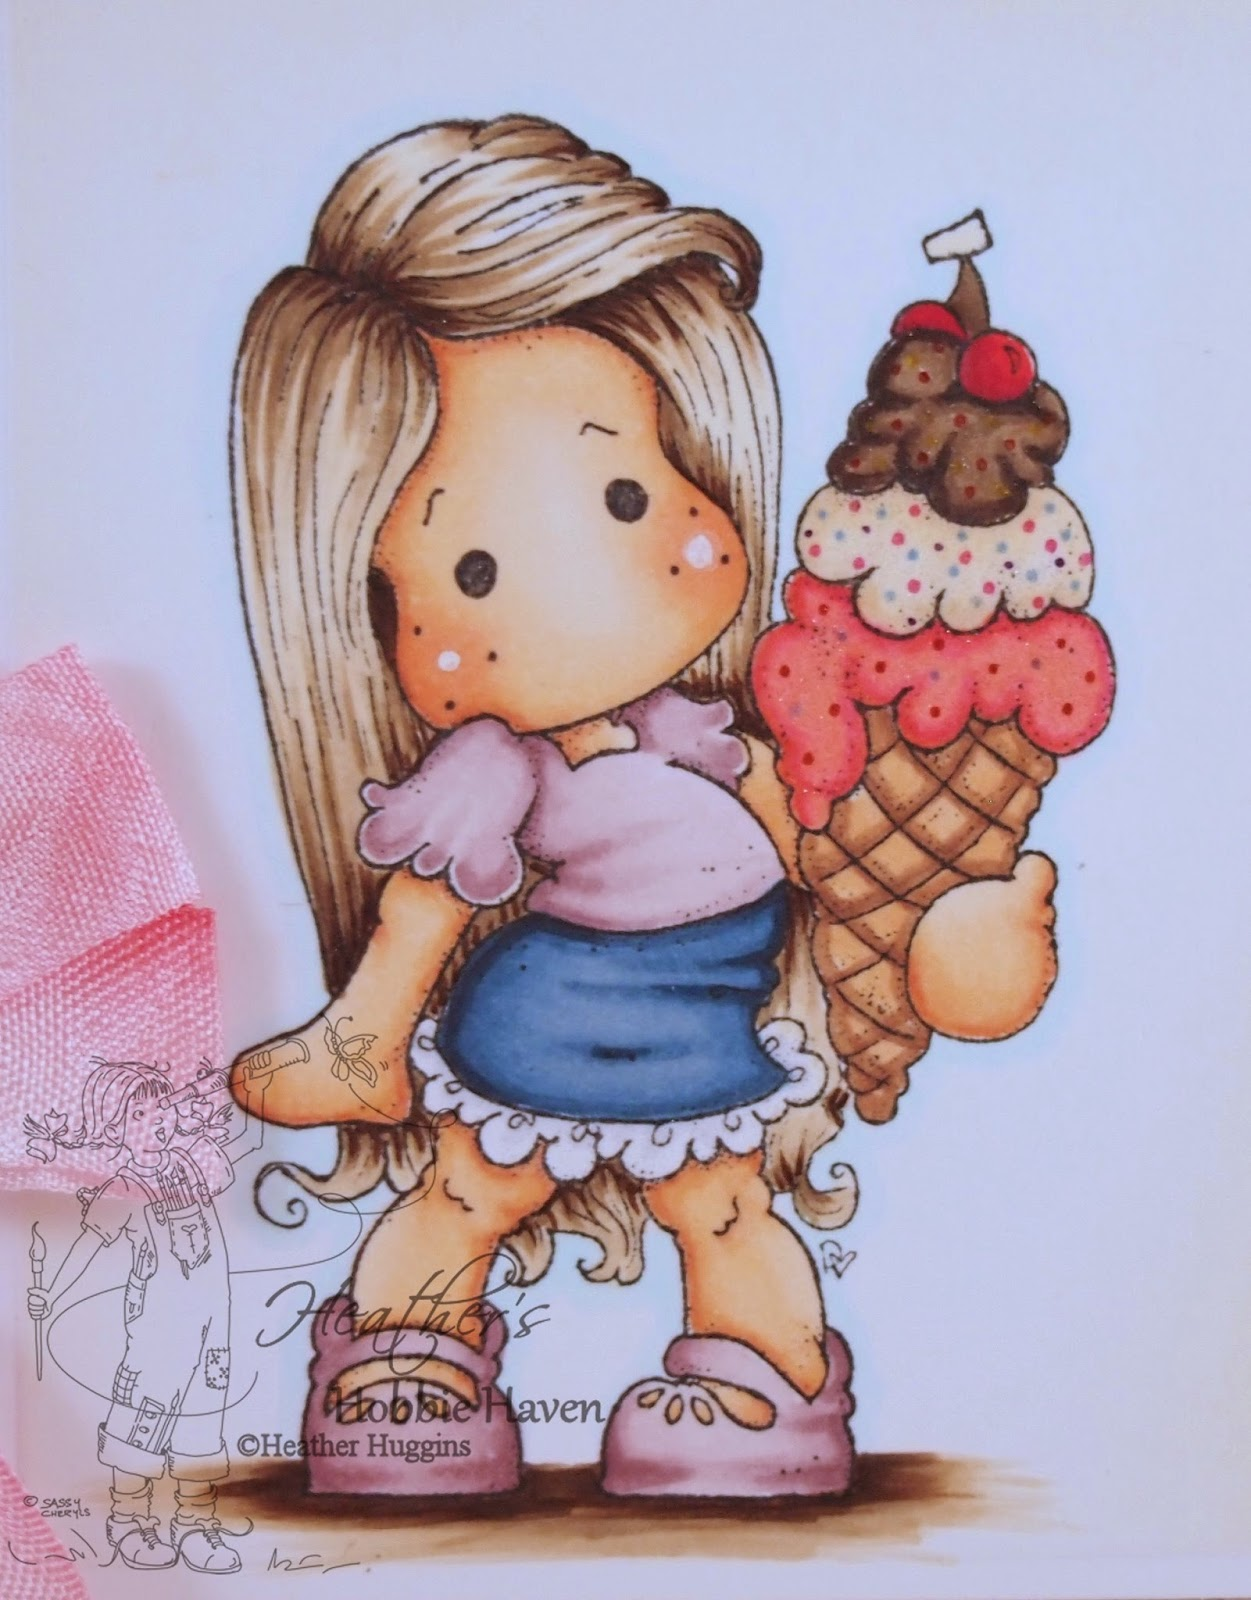 Heather's Hobbie Haven - Tilda with Cherry Ice Card Kit